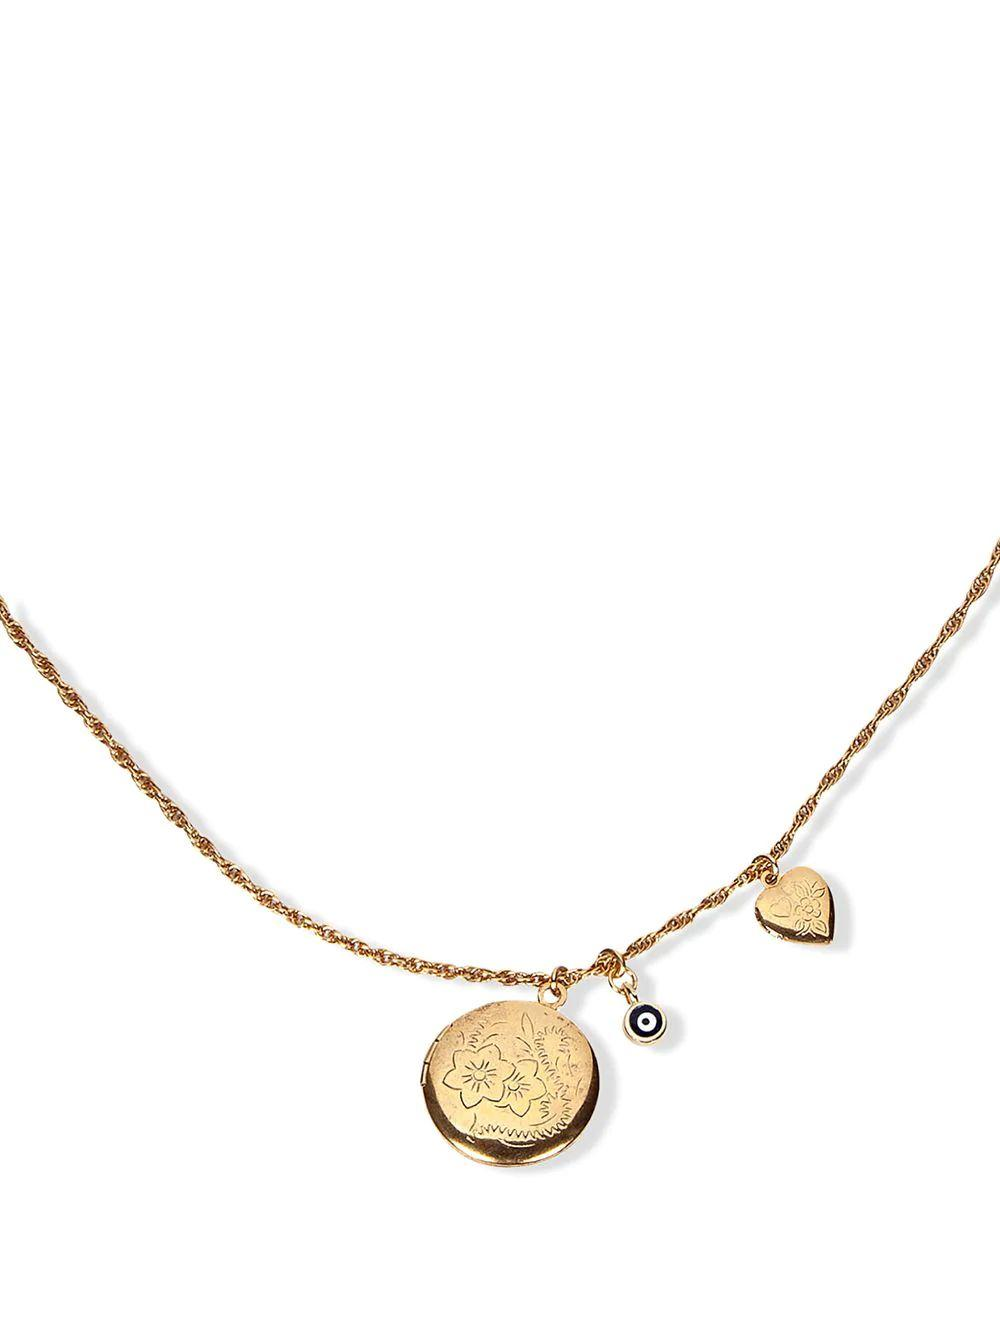 Mila Charm Necklace